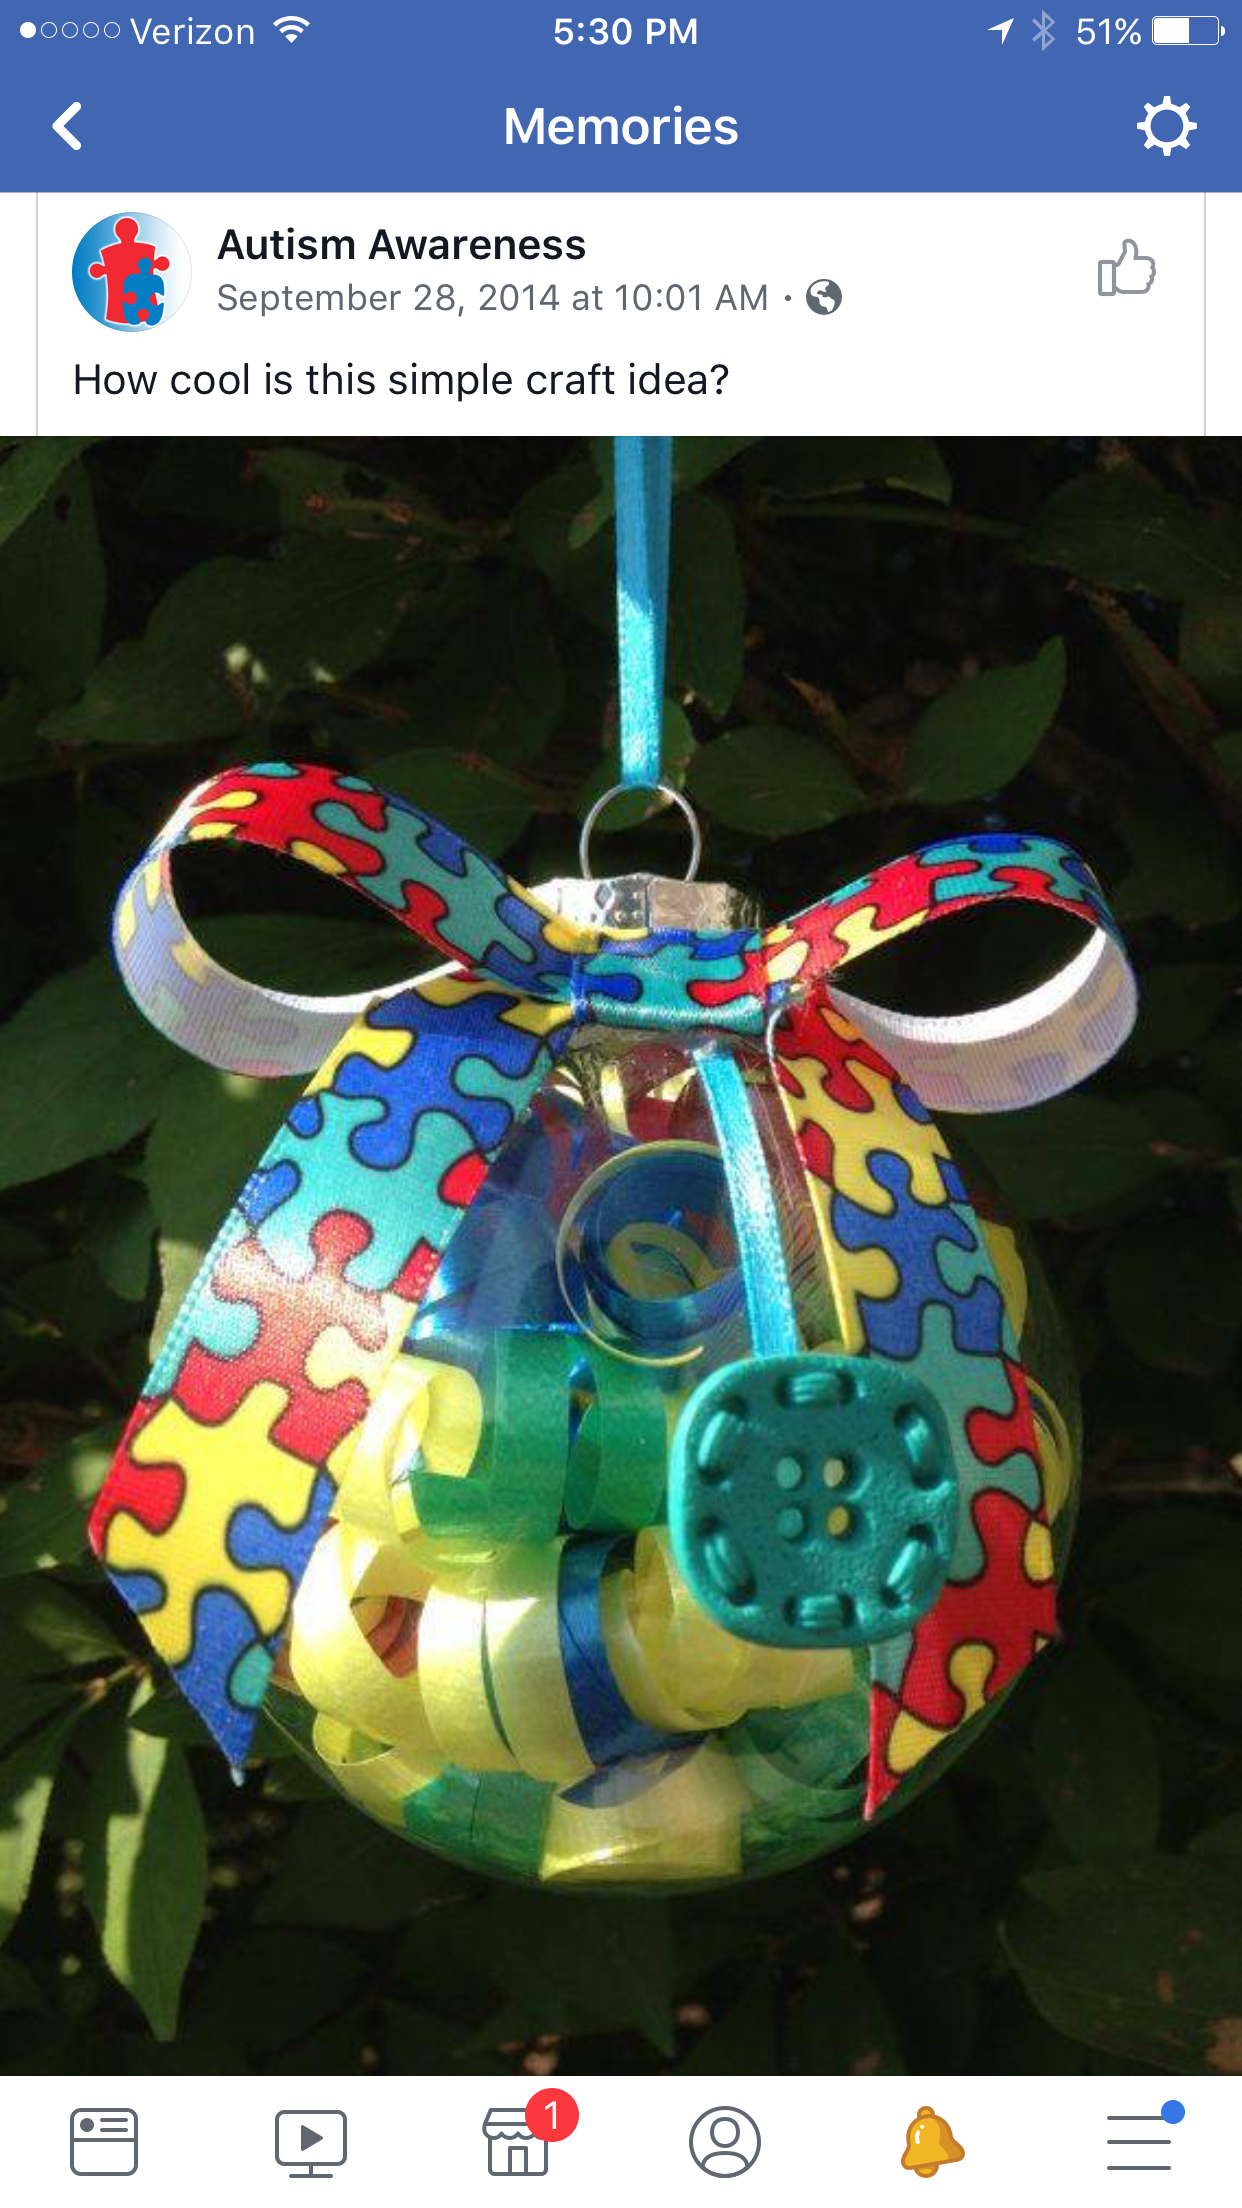 Autism crafts image by Michelle Olsen on Cute gift ideas